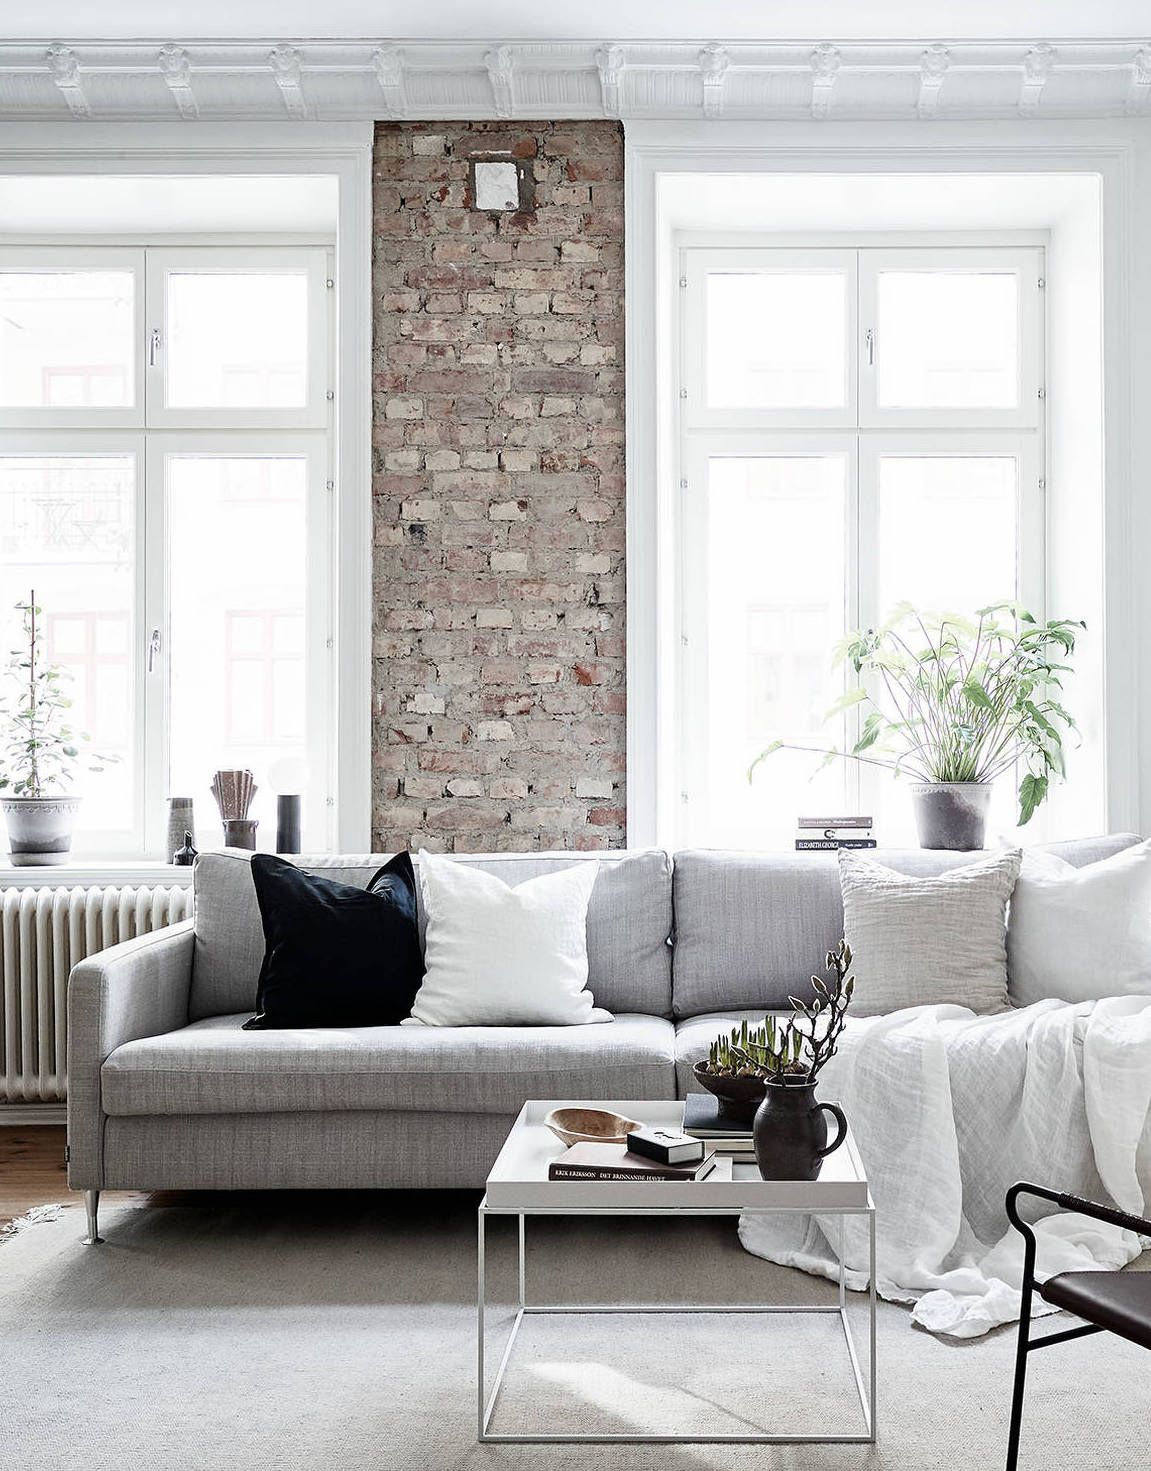 Great mixture of materials - via Coco Lapine Design